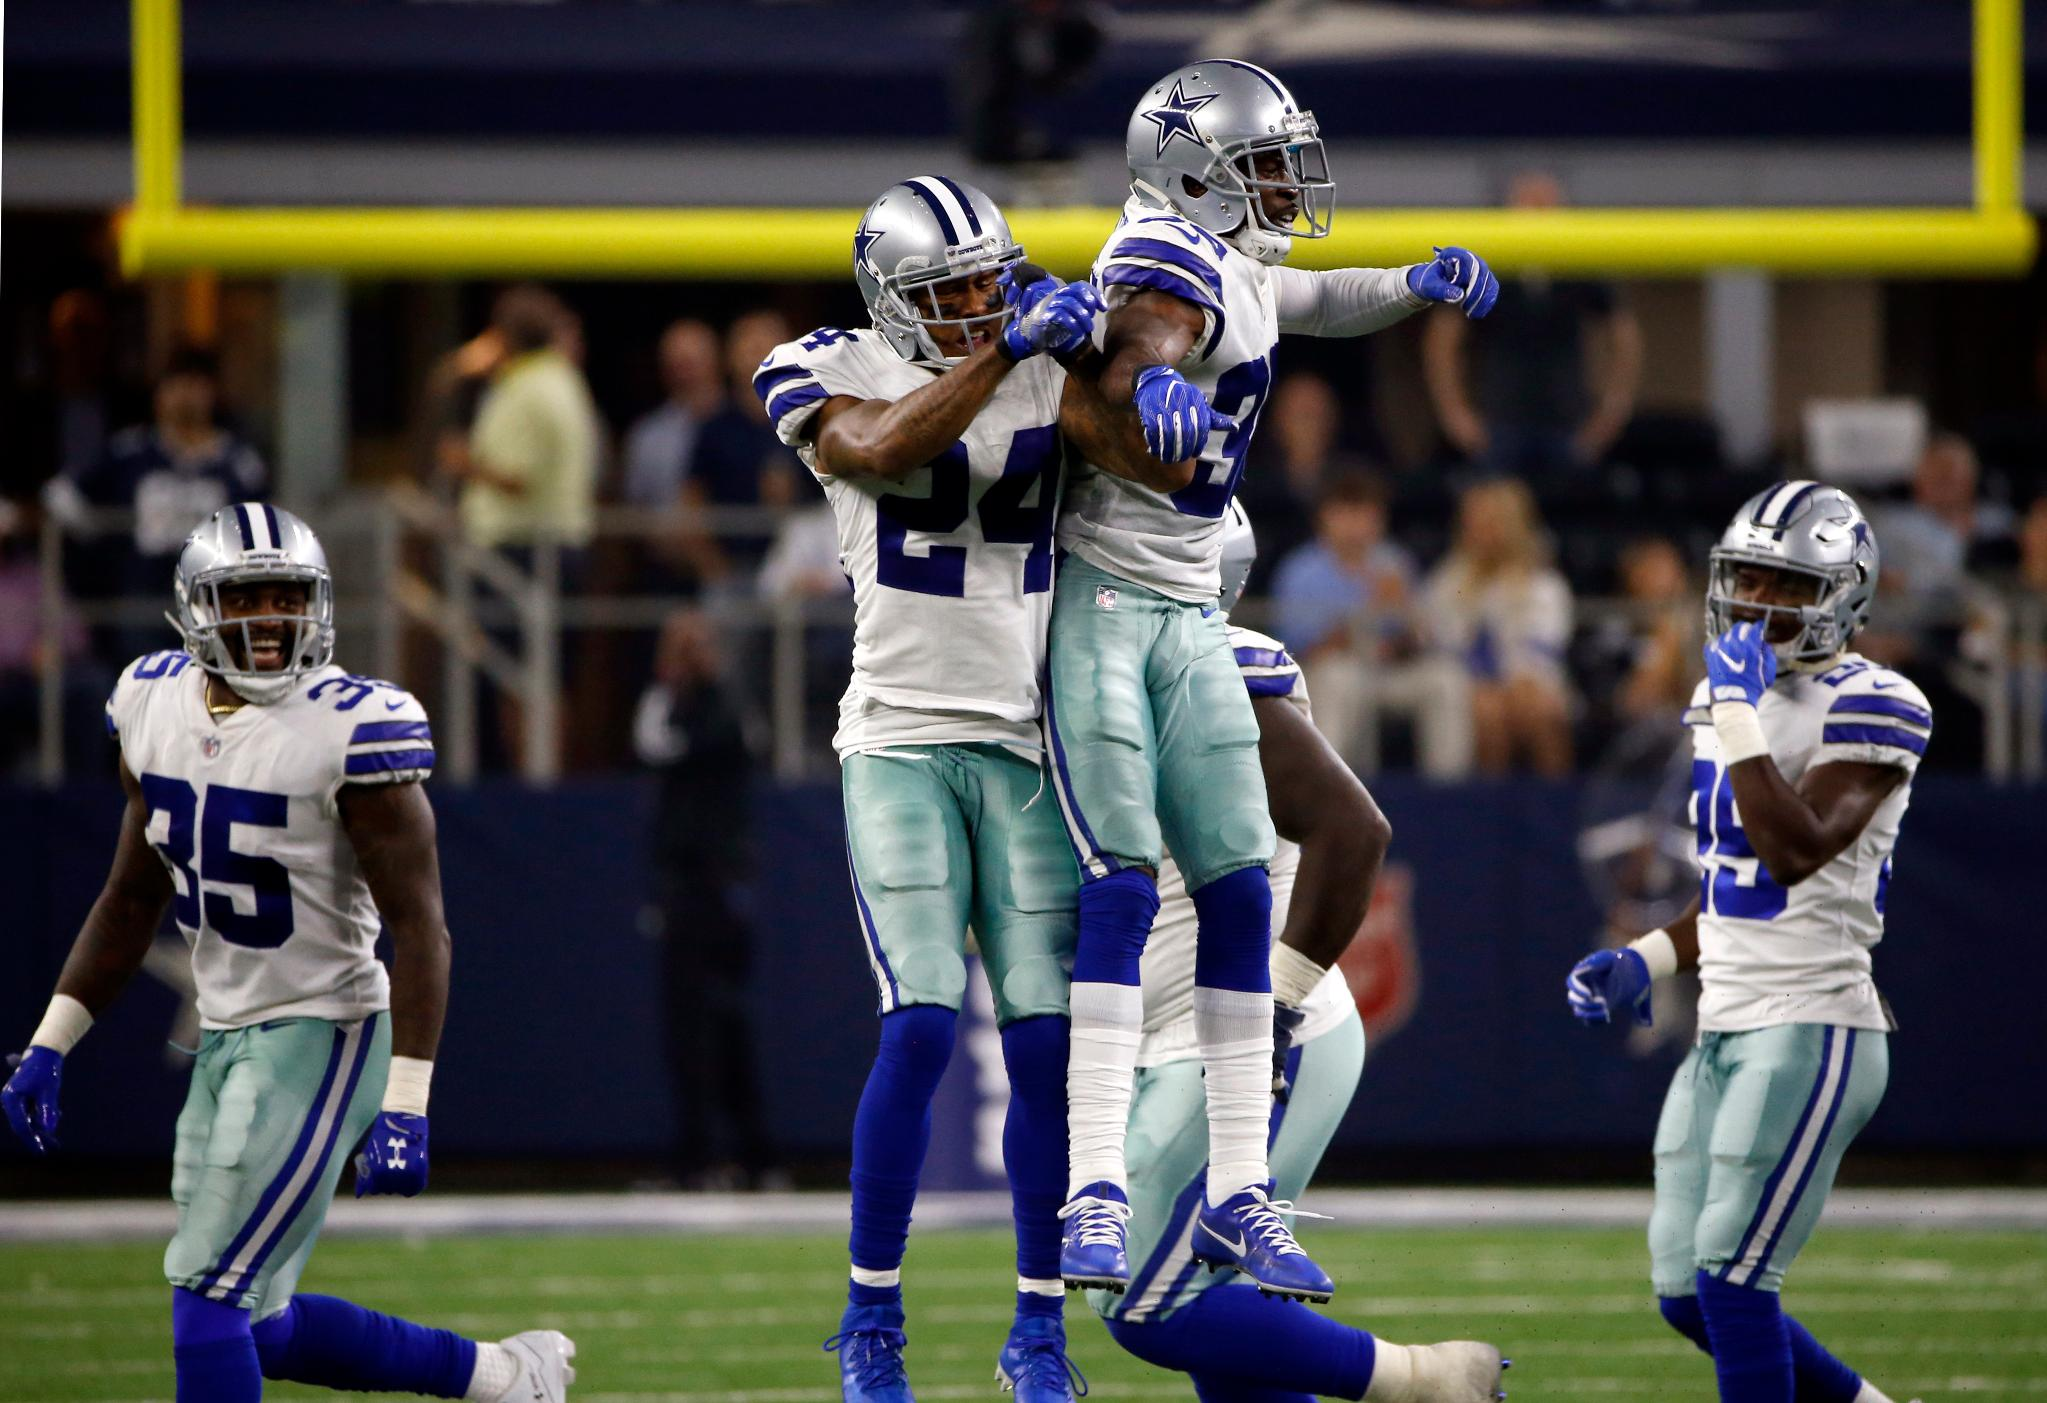 Watch the highlights from the Cowboys week 1 win over the Giants. #NYGvsDAL  ��: https://t.co/BEYpAMMhLO https://t.co/BCgZ71jcQV